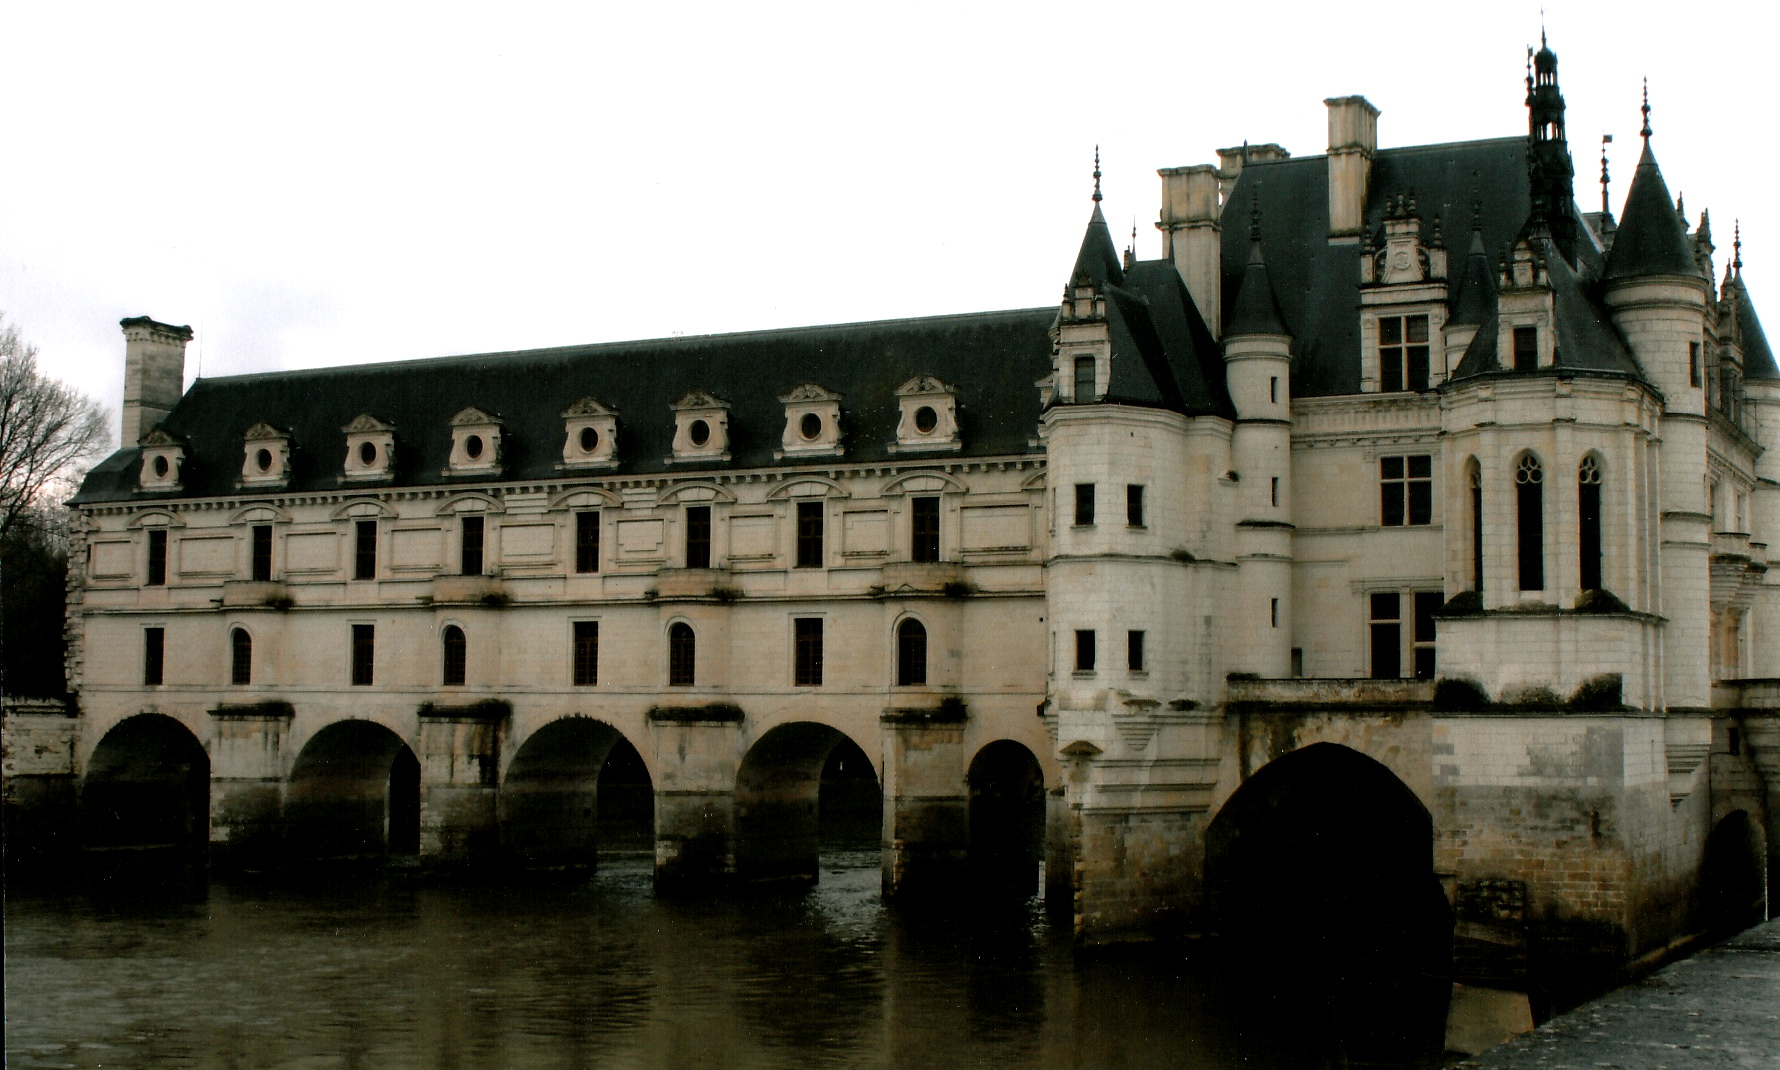 The Side View of the Chateau Spanning the Cher River.